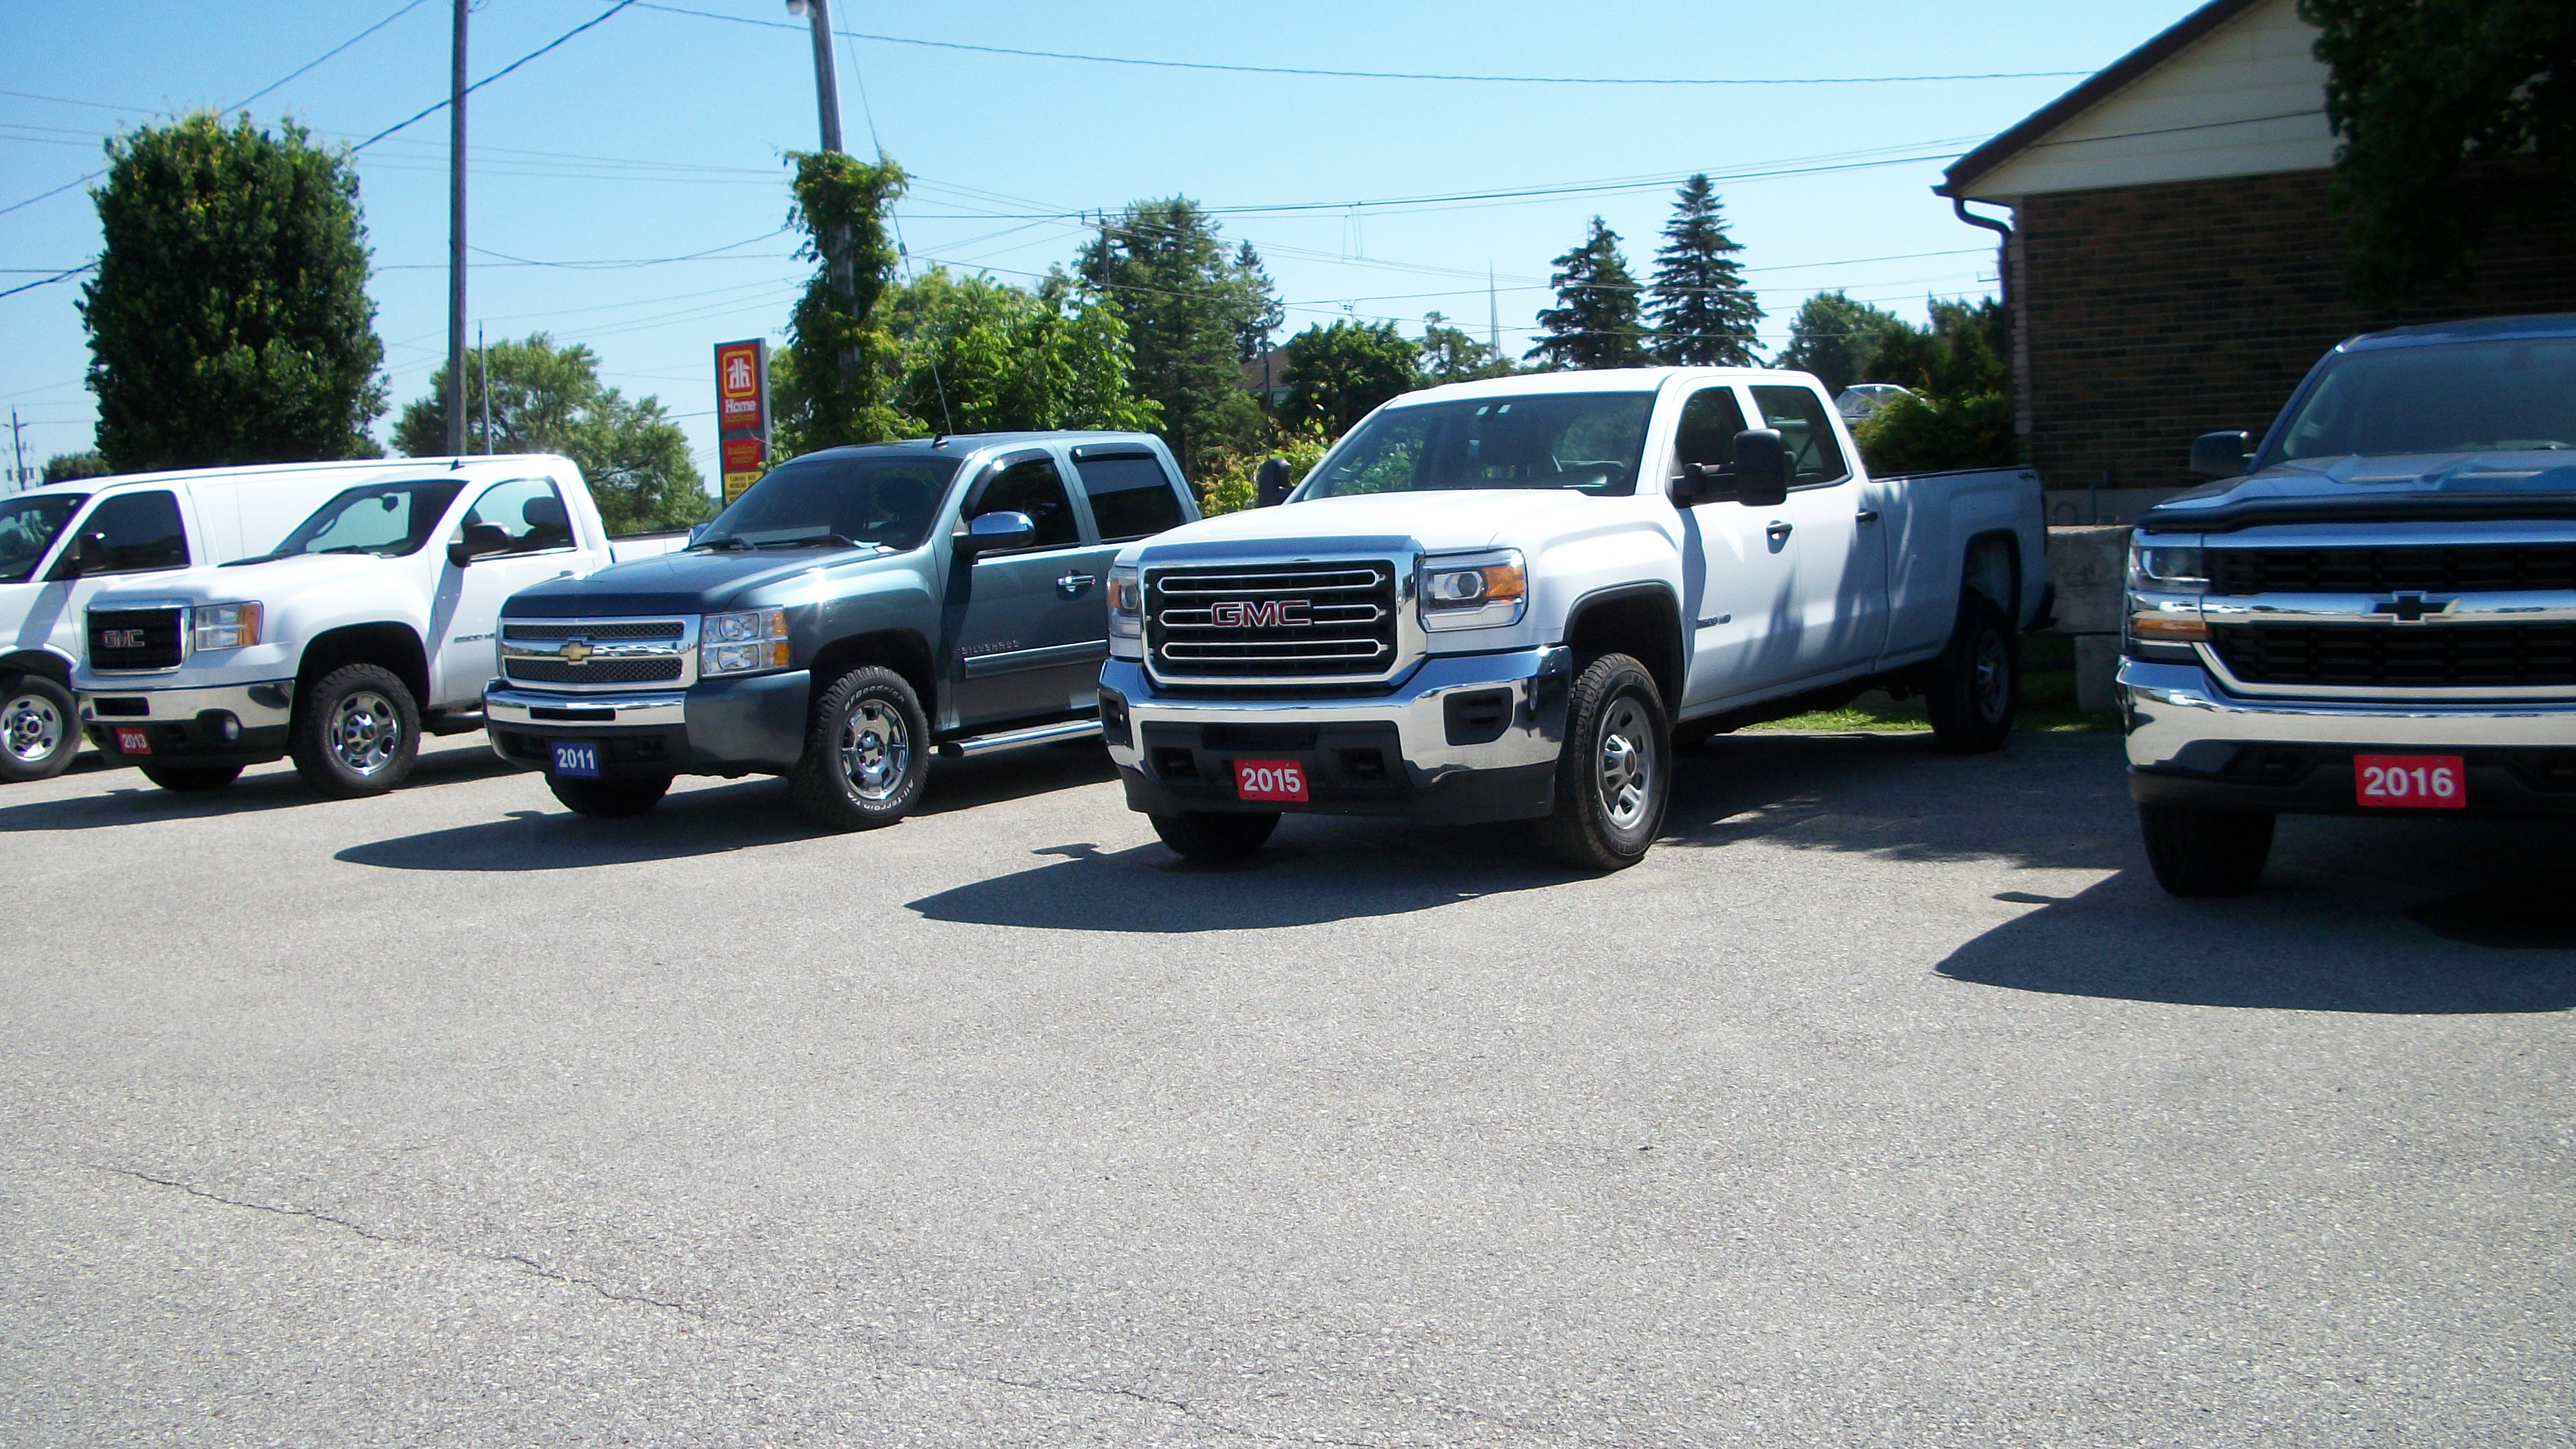 4x4 S Festival City Motors Used Pickup Trucks 4x4 Diesel Trucks And Cargo Vans Stratford Ontario